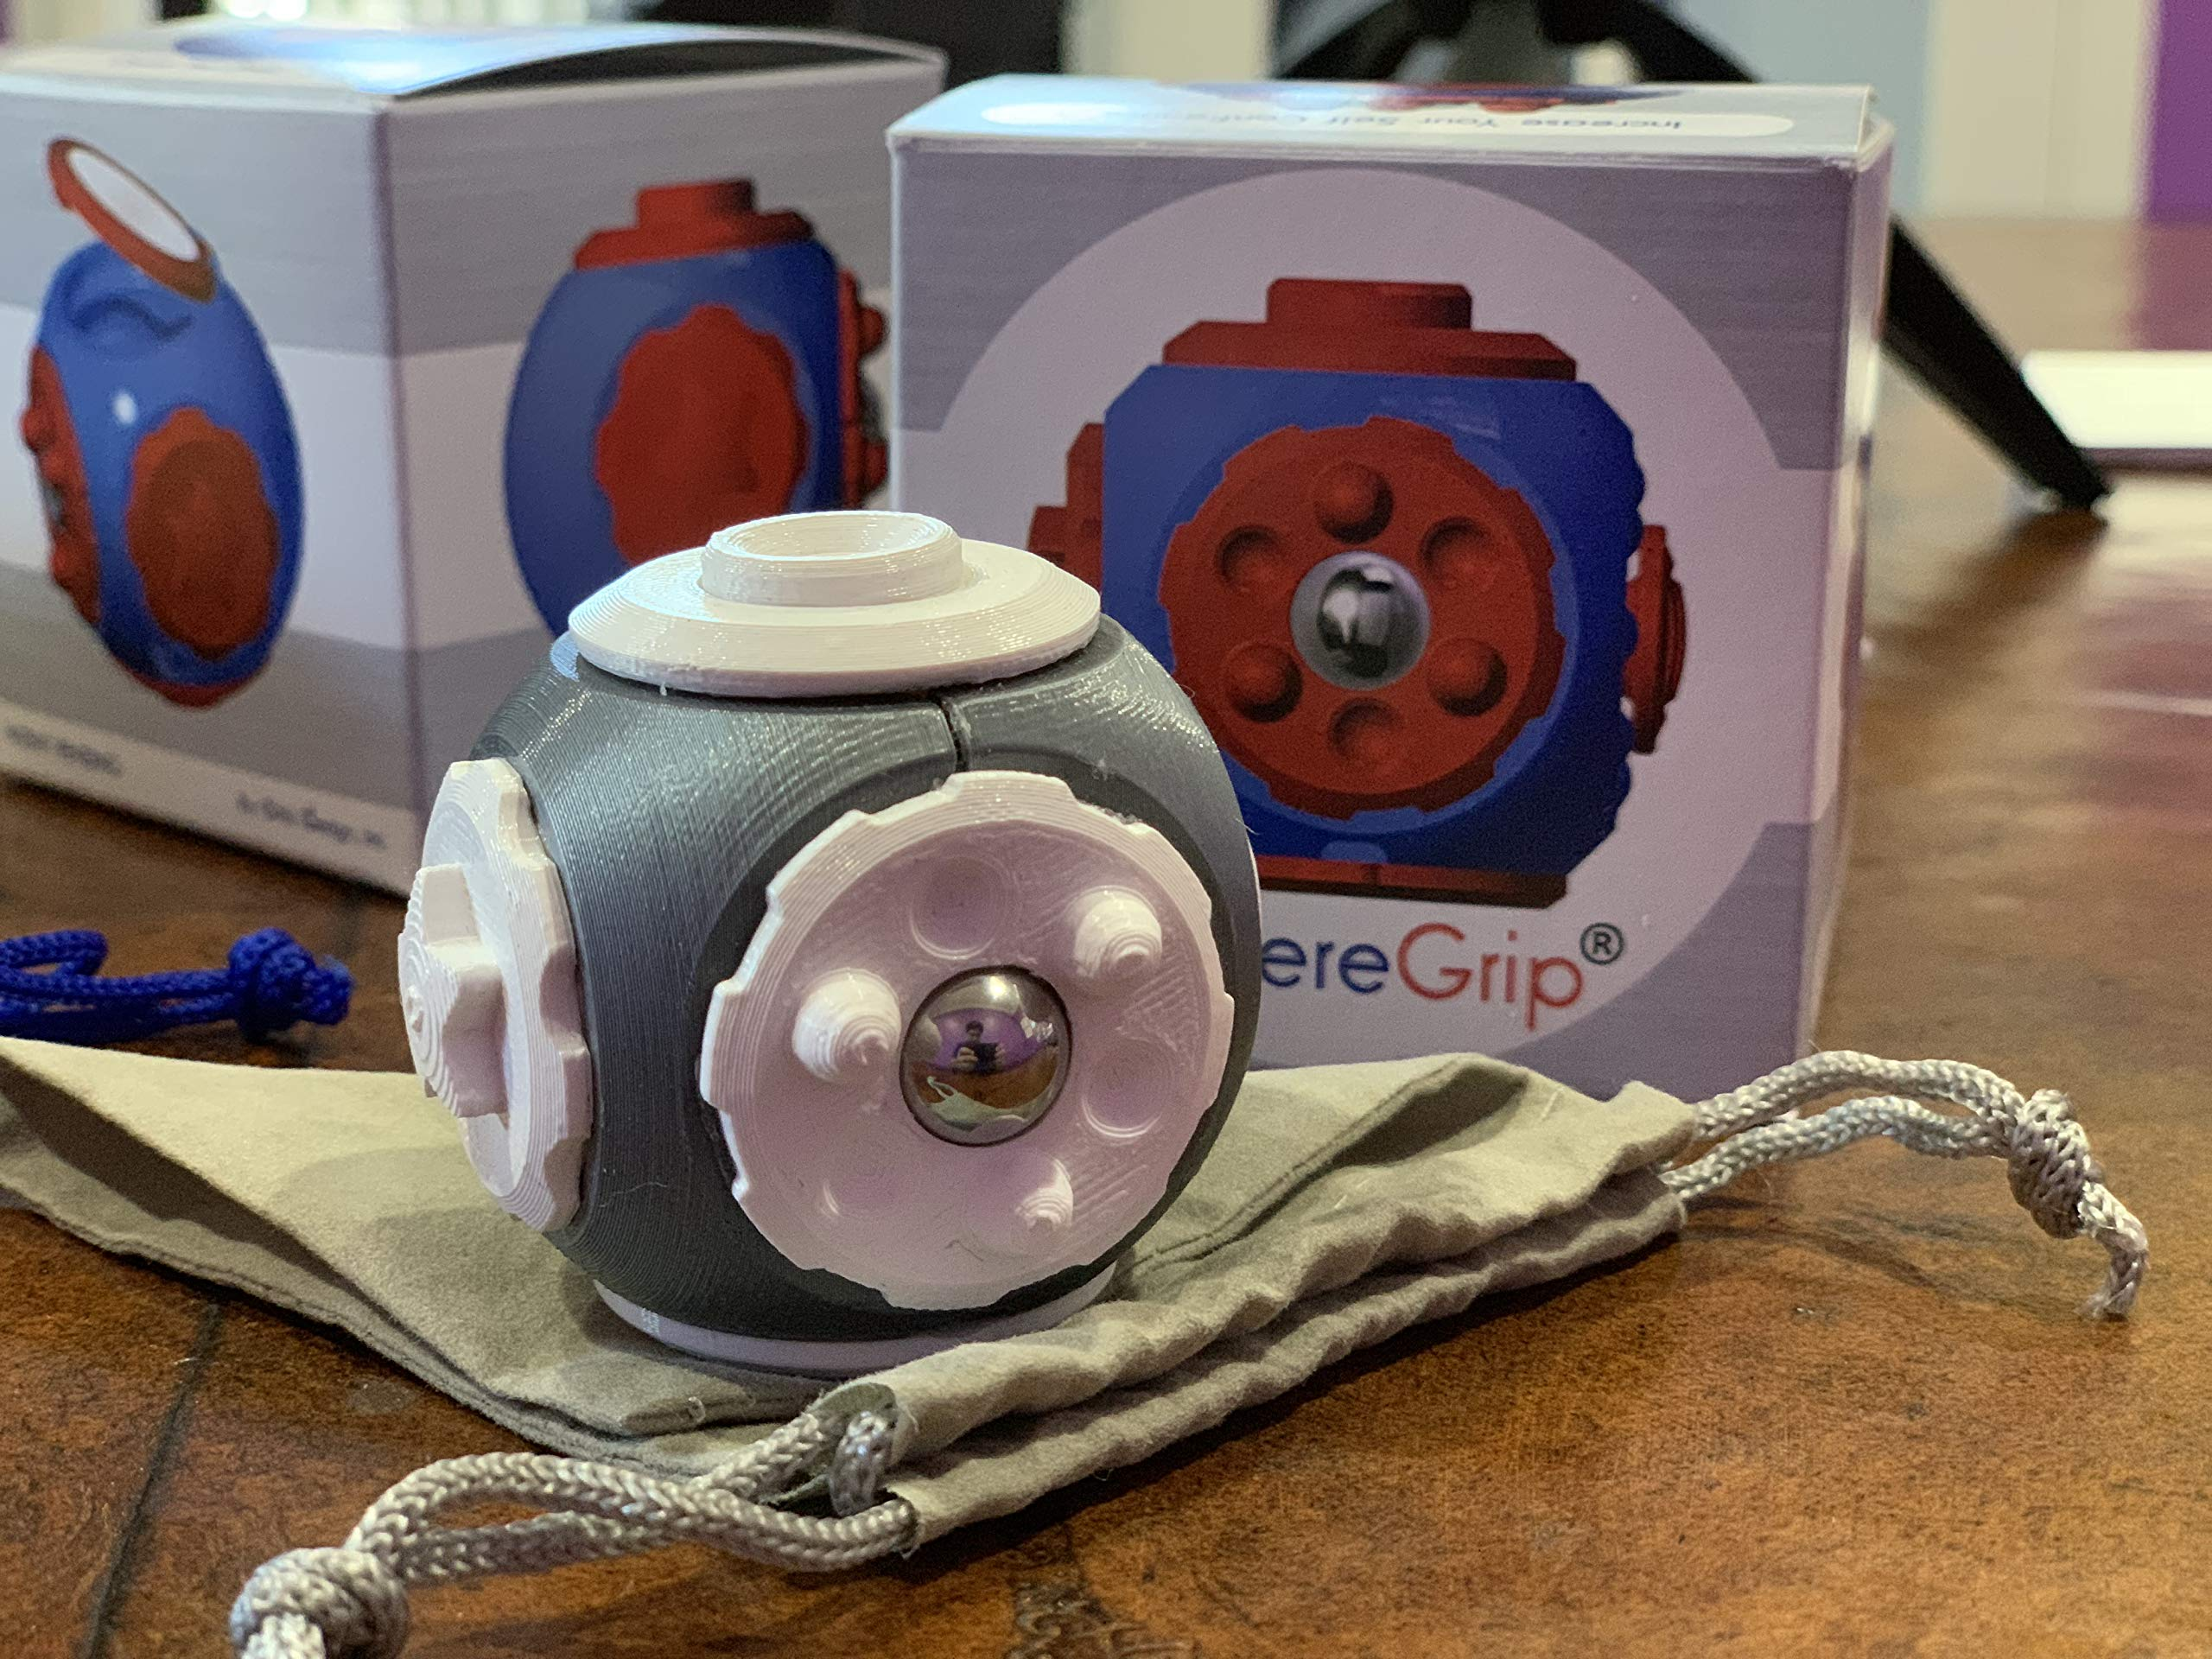 SphereGrip, Fidget toy, Reduce Anxiety and Stress, Increase Self-confidence, Fidget, Storage, Mirror (All 6 combinations) by Arbi Design (Image #9)